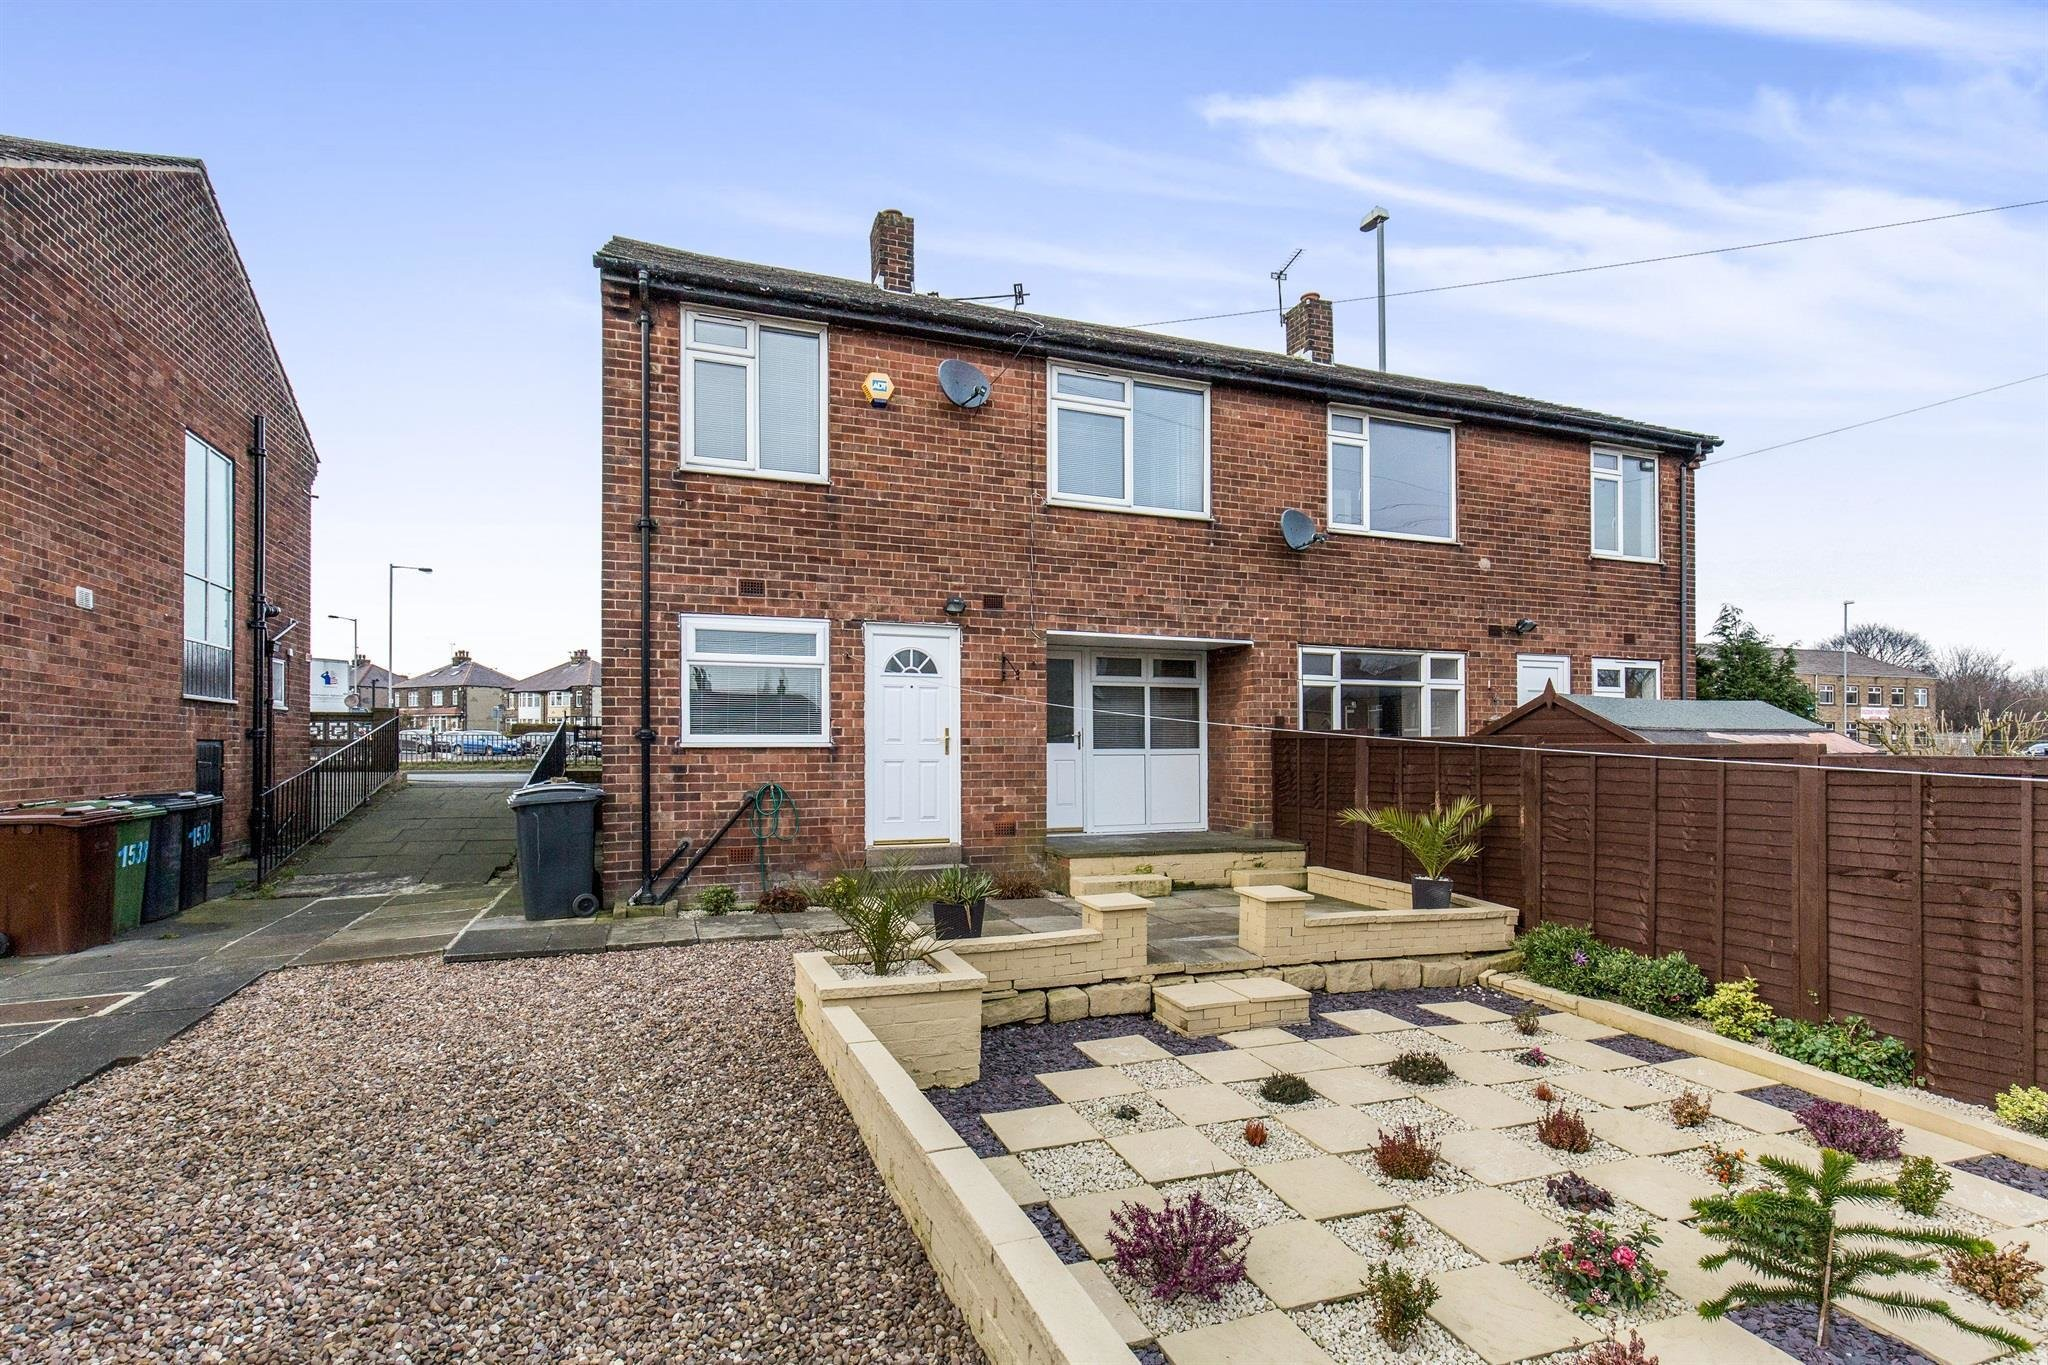 Best 2 Bedroom House To Rent Bradford Road Bradford Bd3 7Ba With Pictures